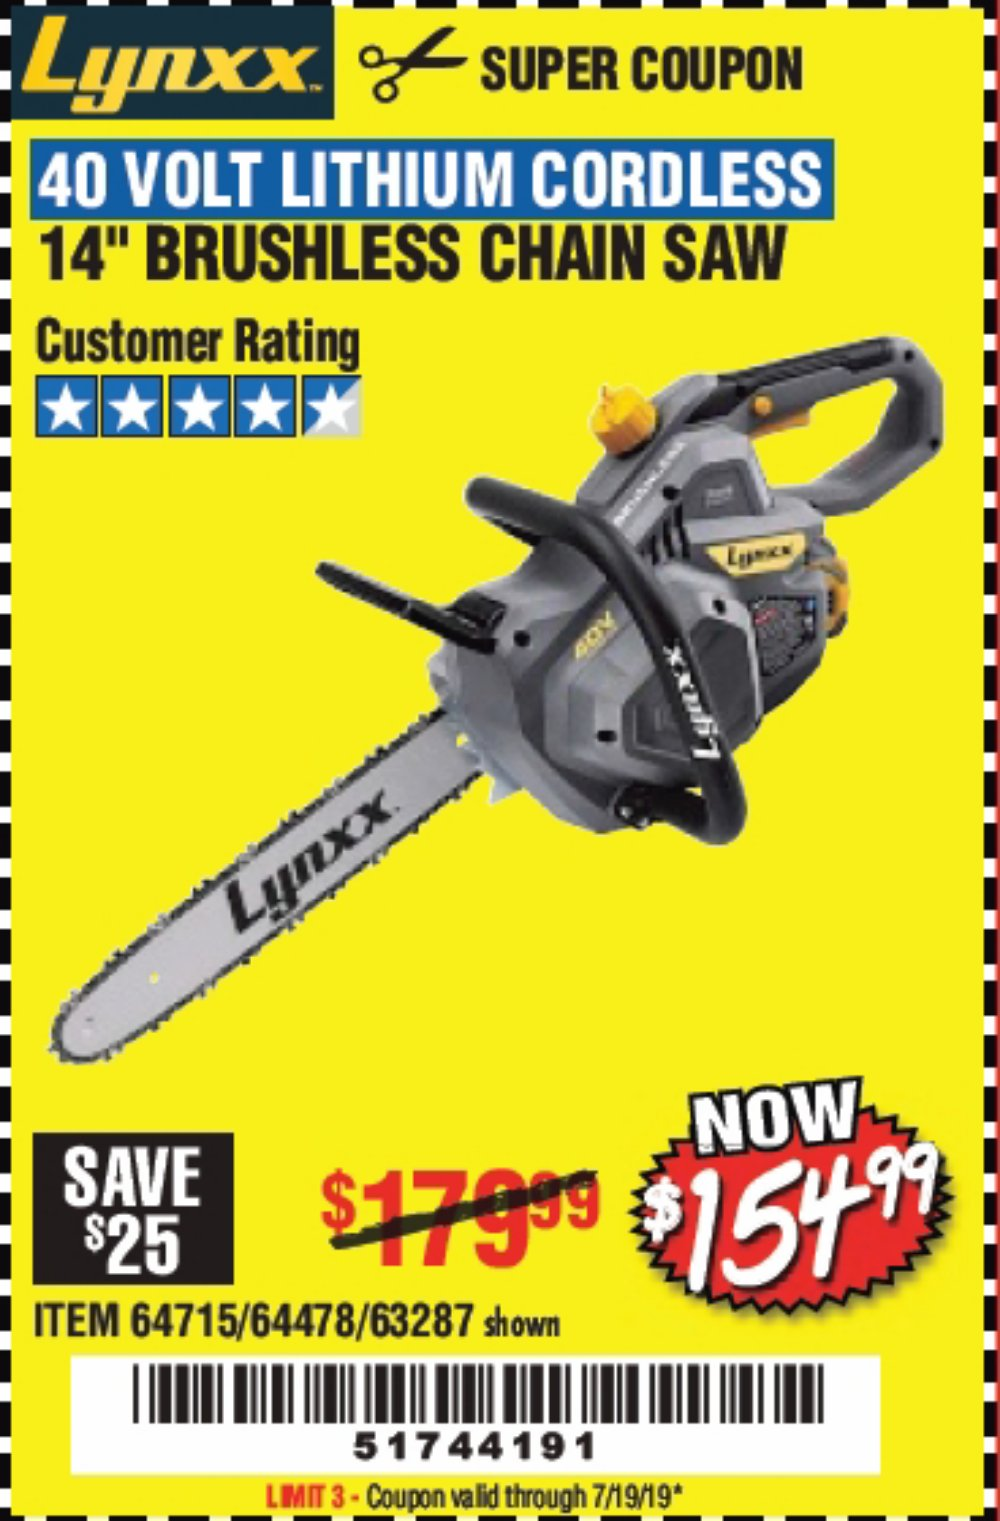 Harbor Freight Coupon, HF Coupons - Lynxx 40 V Lithium Cordless 14